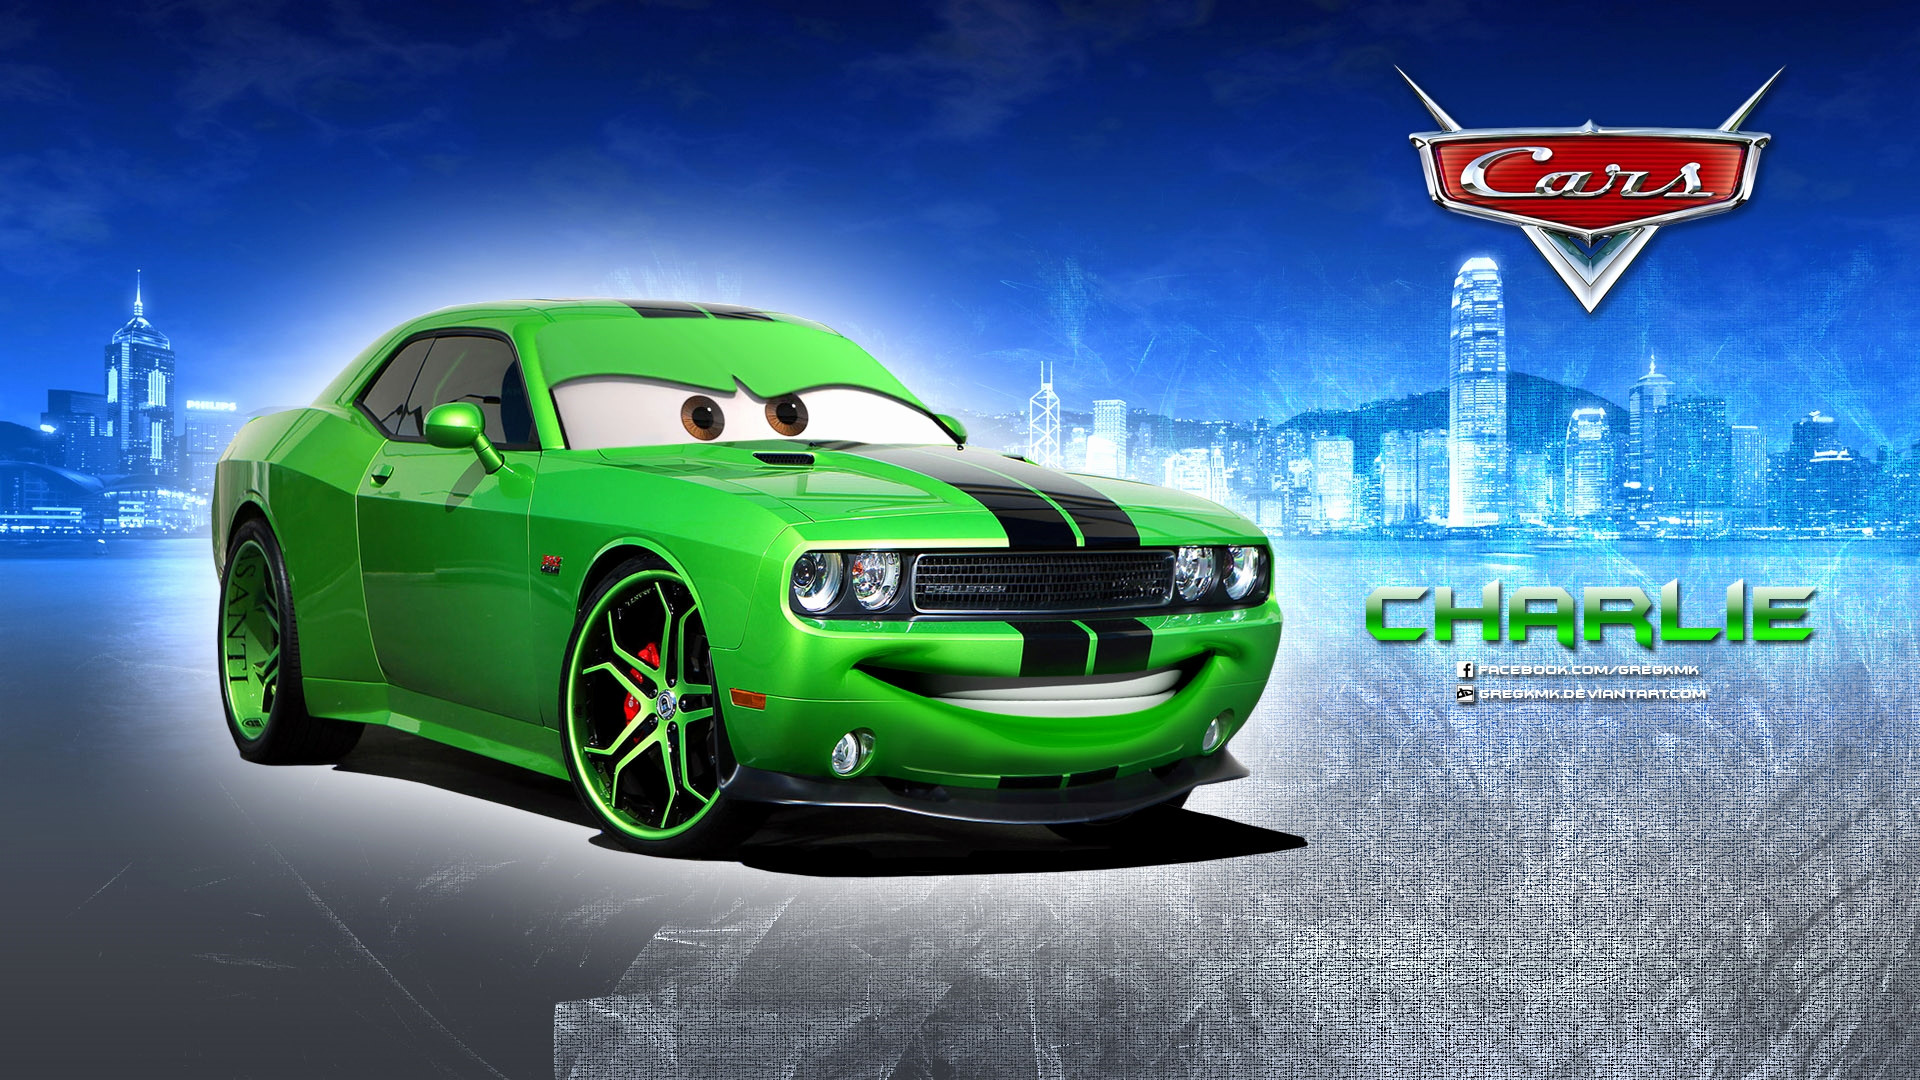 1920x1080 charlie dodge challenger disney pixar cars 1 2 free hd wallpaper